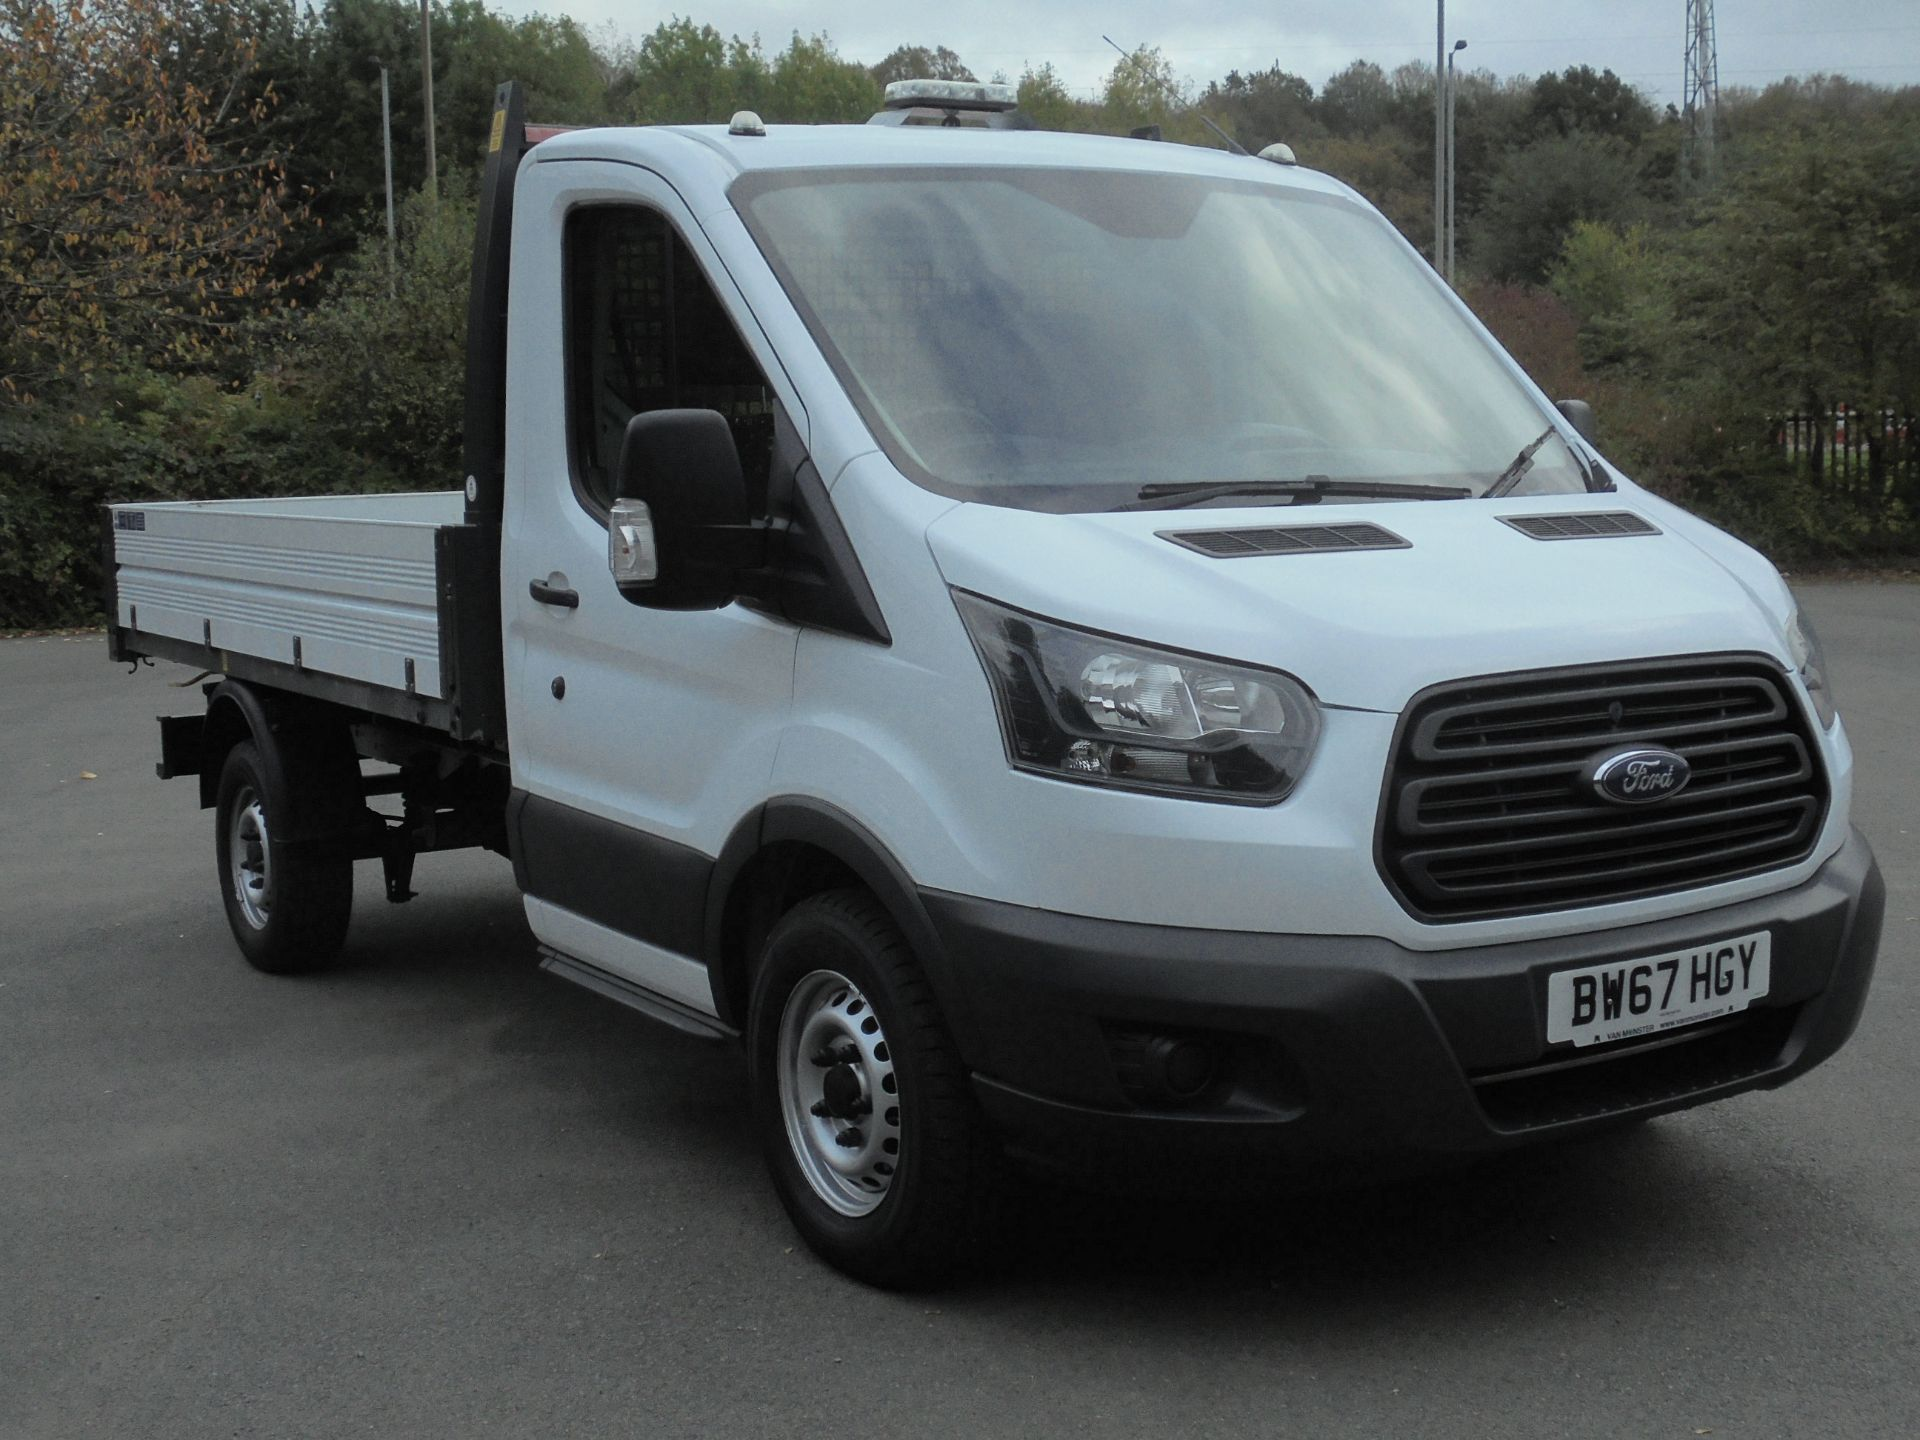 2018 Ford Transit 2.0 Tdci 130Ps 'One Stop' Tipper [1 Way] (BW67HGY)